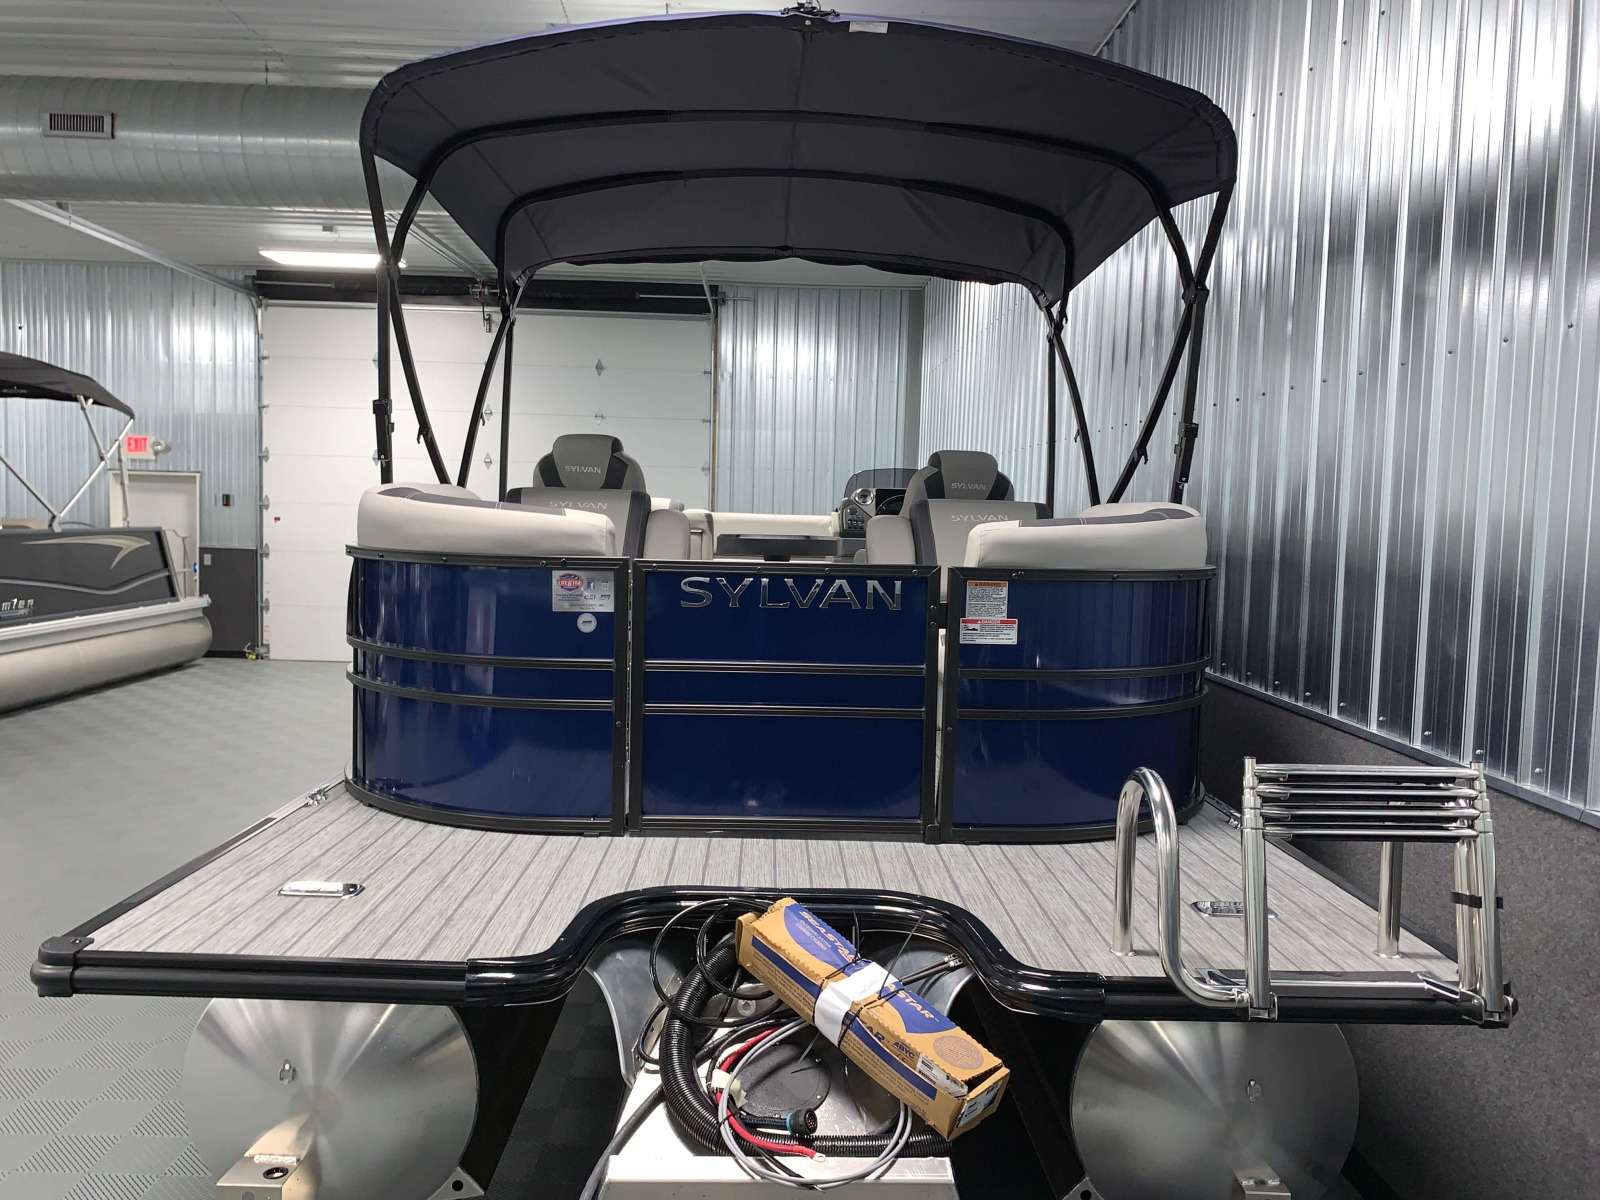 Extended Rear Swim Deck of the 2021 Sylvan L3 LZ Tritoon Boat